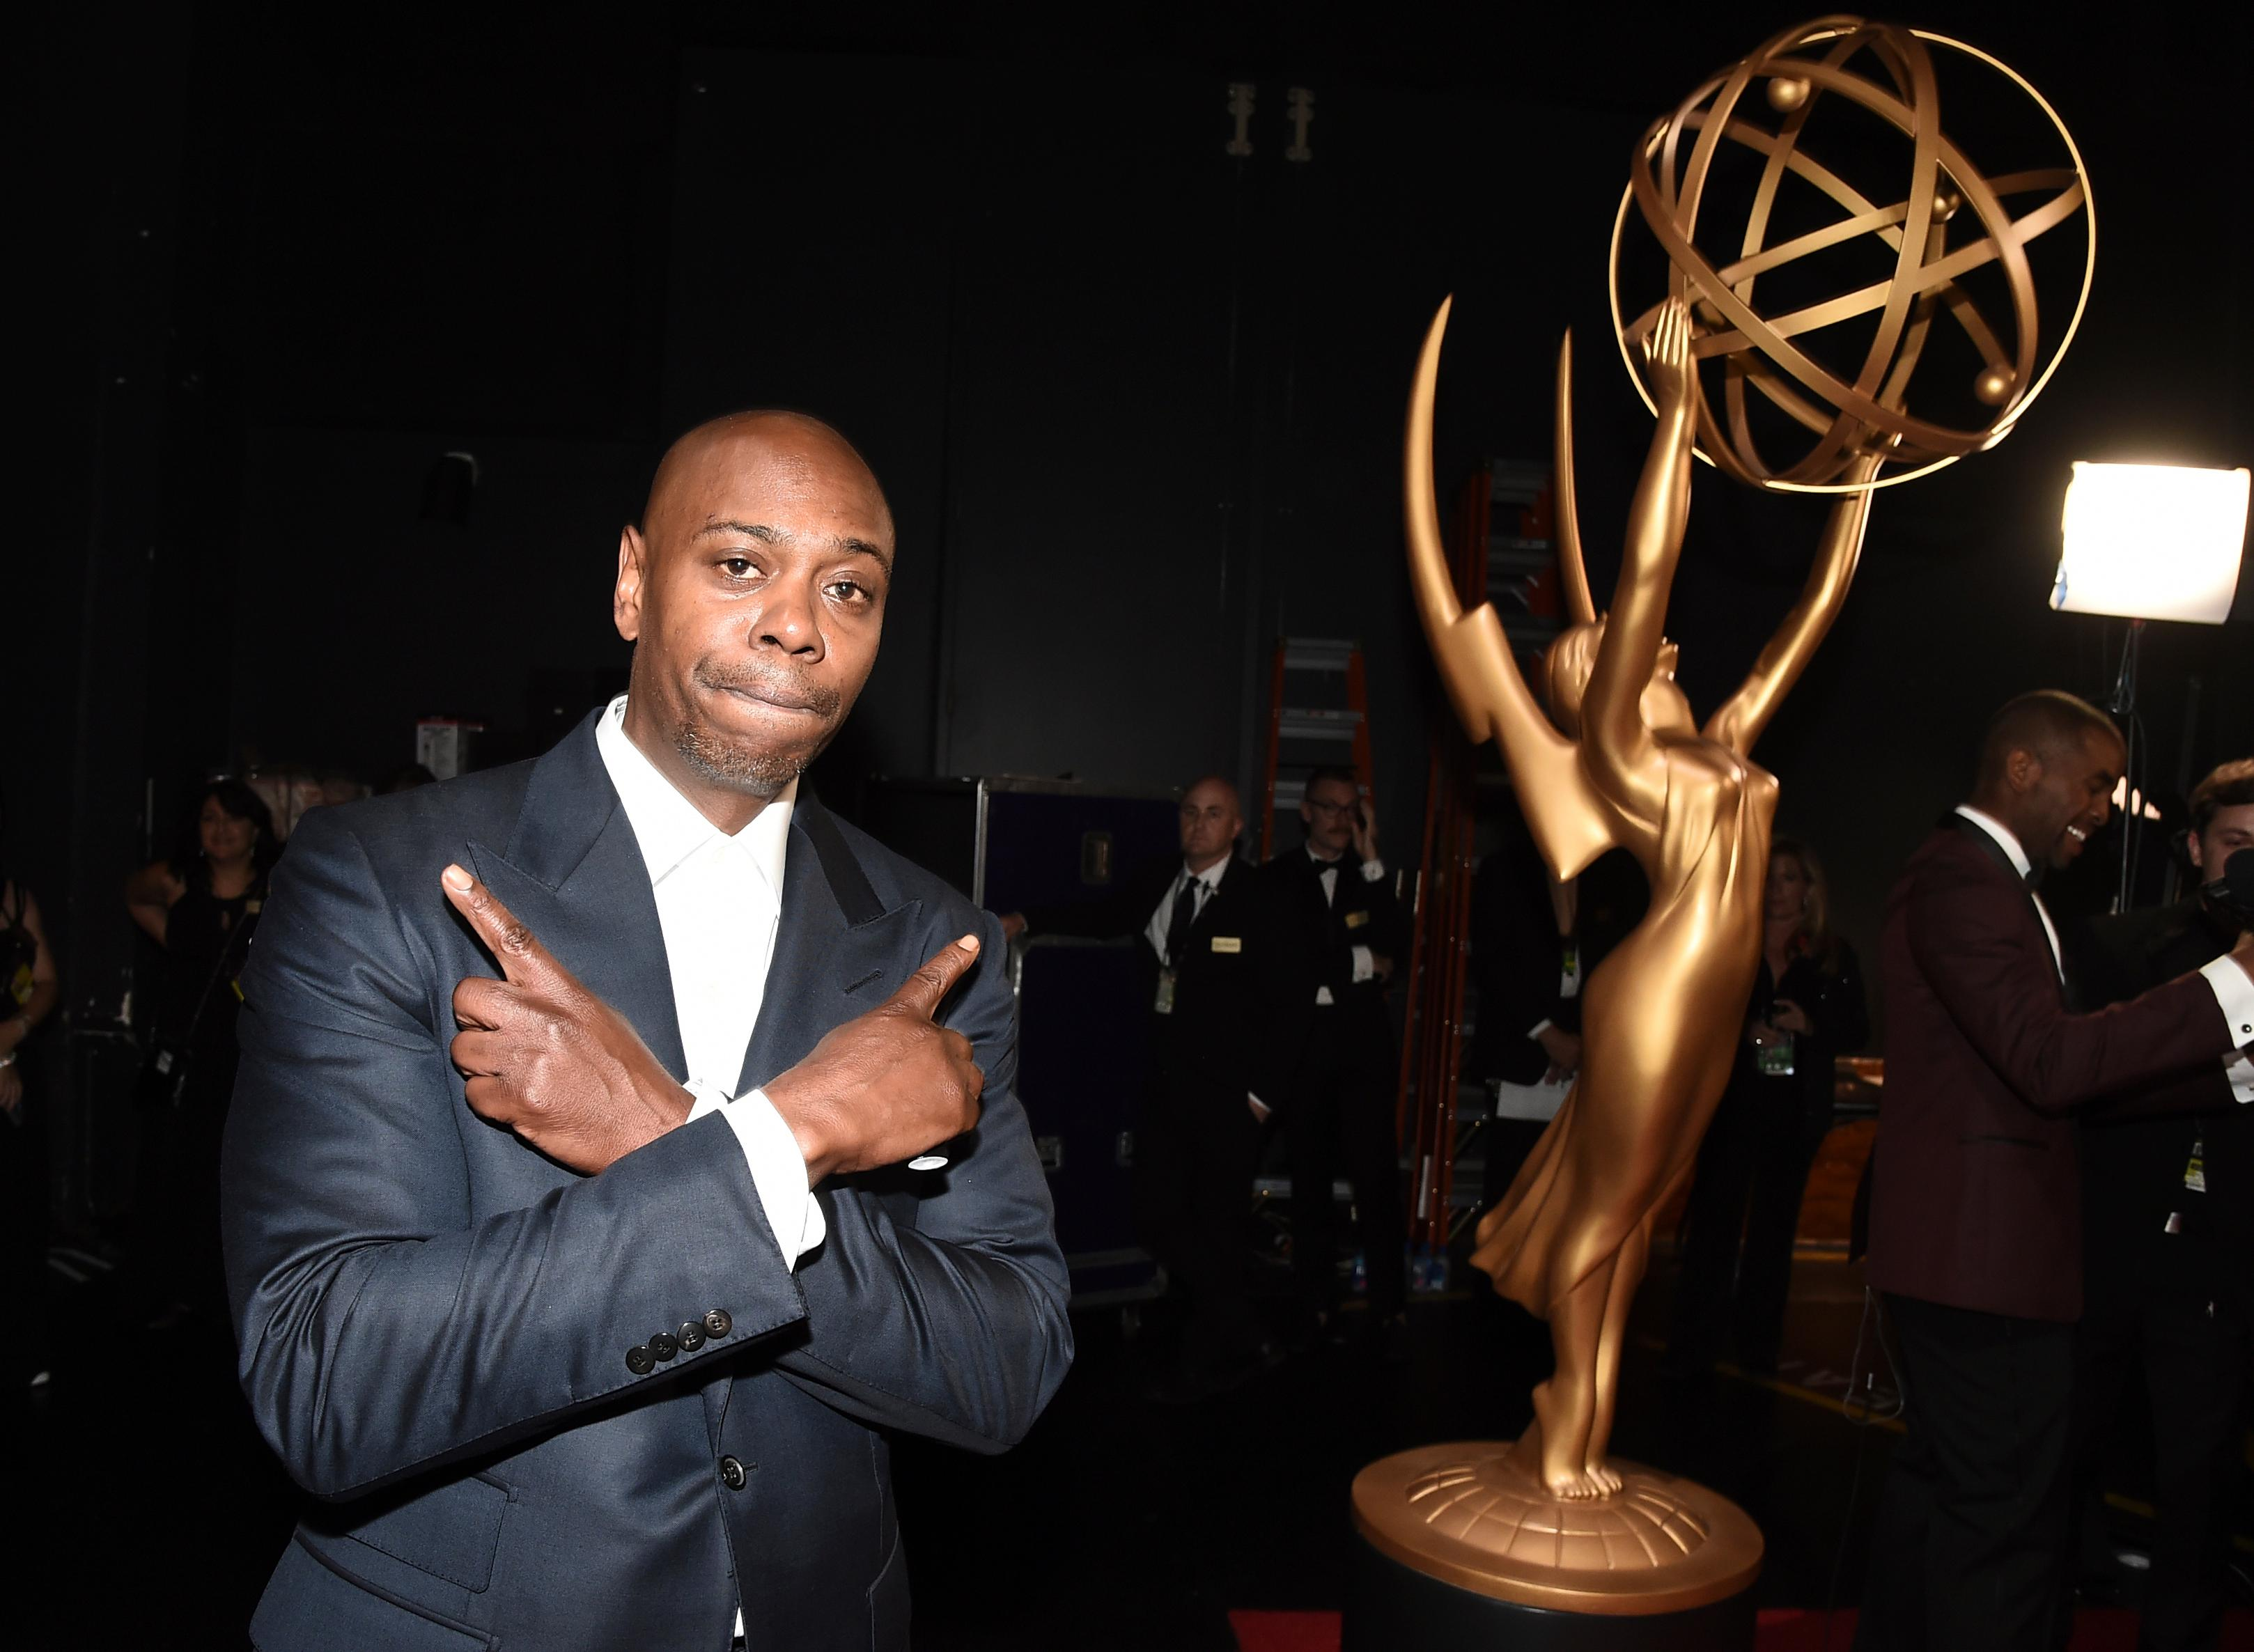 Dave Chappelle poses backstage at the 69th Primetime Emmy Awards on Sunday, Sept. 17, 2017, at the Microsoft Theater in Los Angeles. (Photo by Dan Steinberg/Invision for the Television Academy/AP Images)